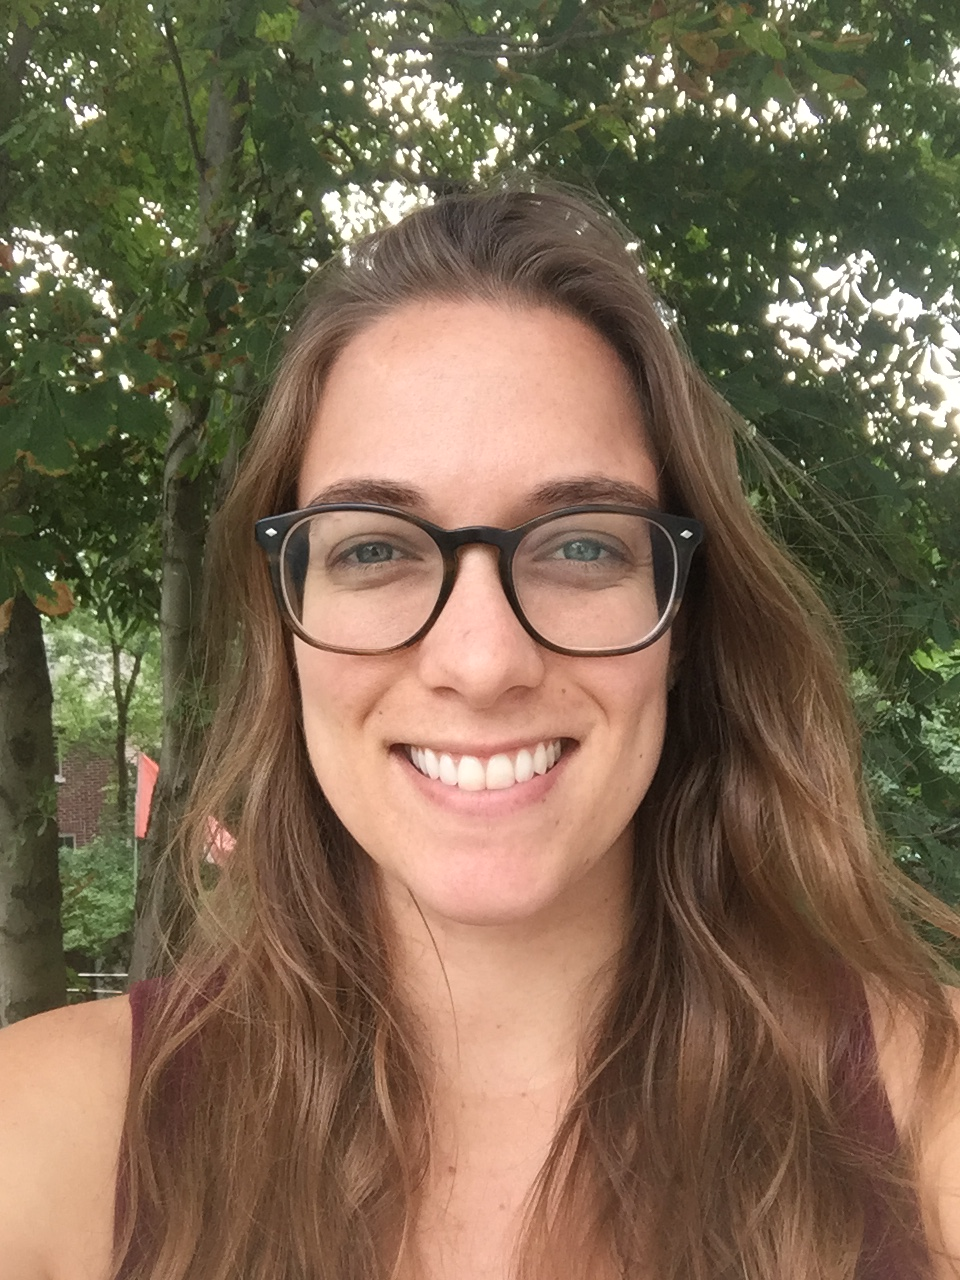 Image description: Head shot of Cami, a young white woman with glasses and long brown hair, smiling, trees in the background.